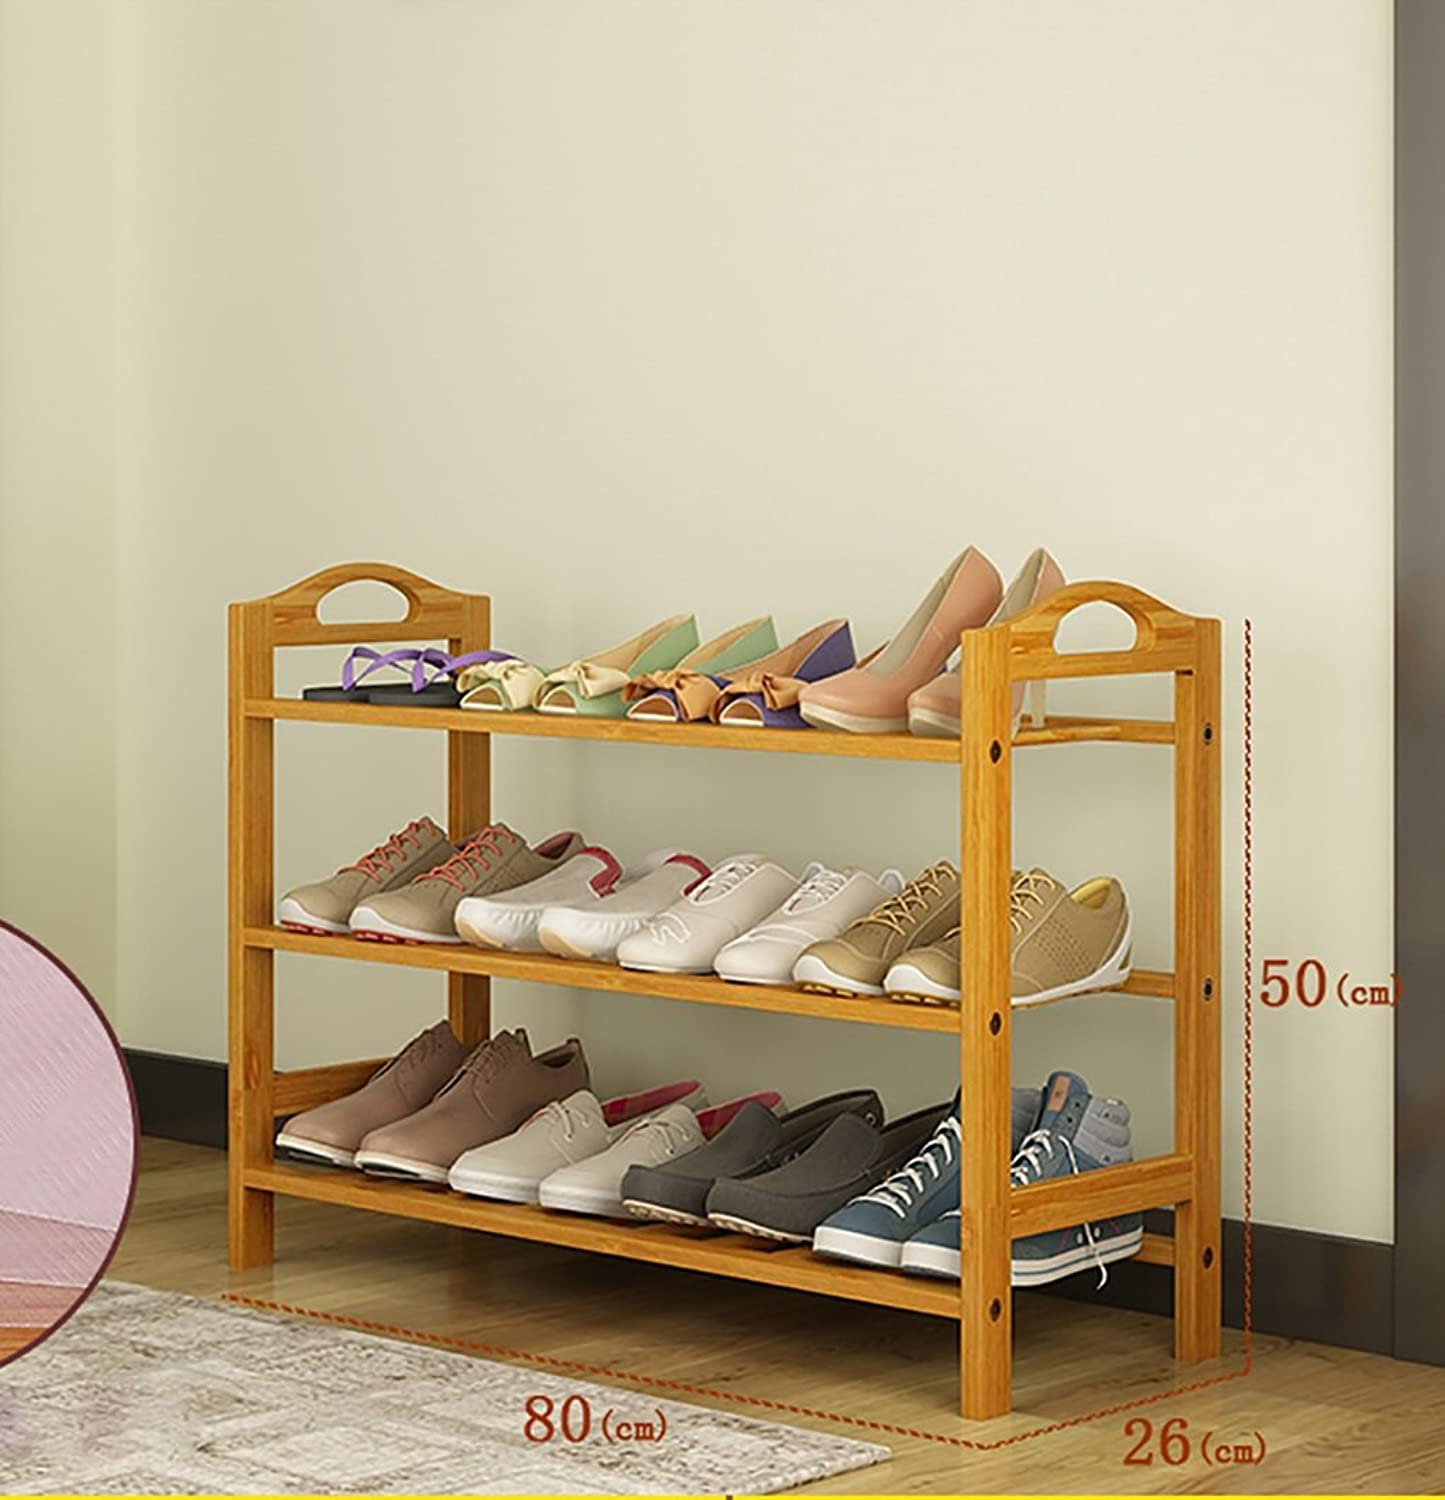 shoes Bench Organizing Rack Natural Bamboo shoes Rack Three-Layer Unit Shelf Simple Storage shoes Rack (Size   80  26  50cm)